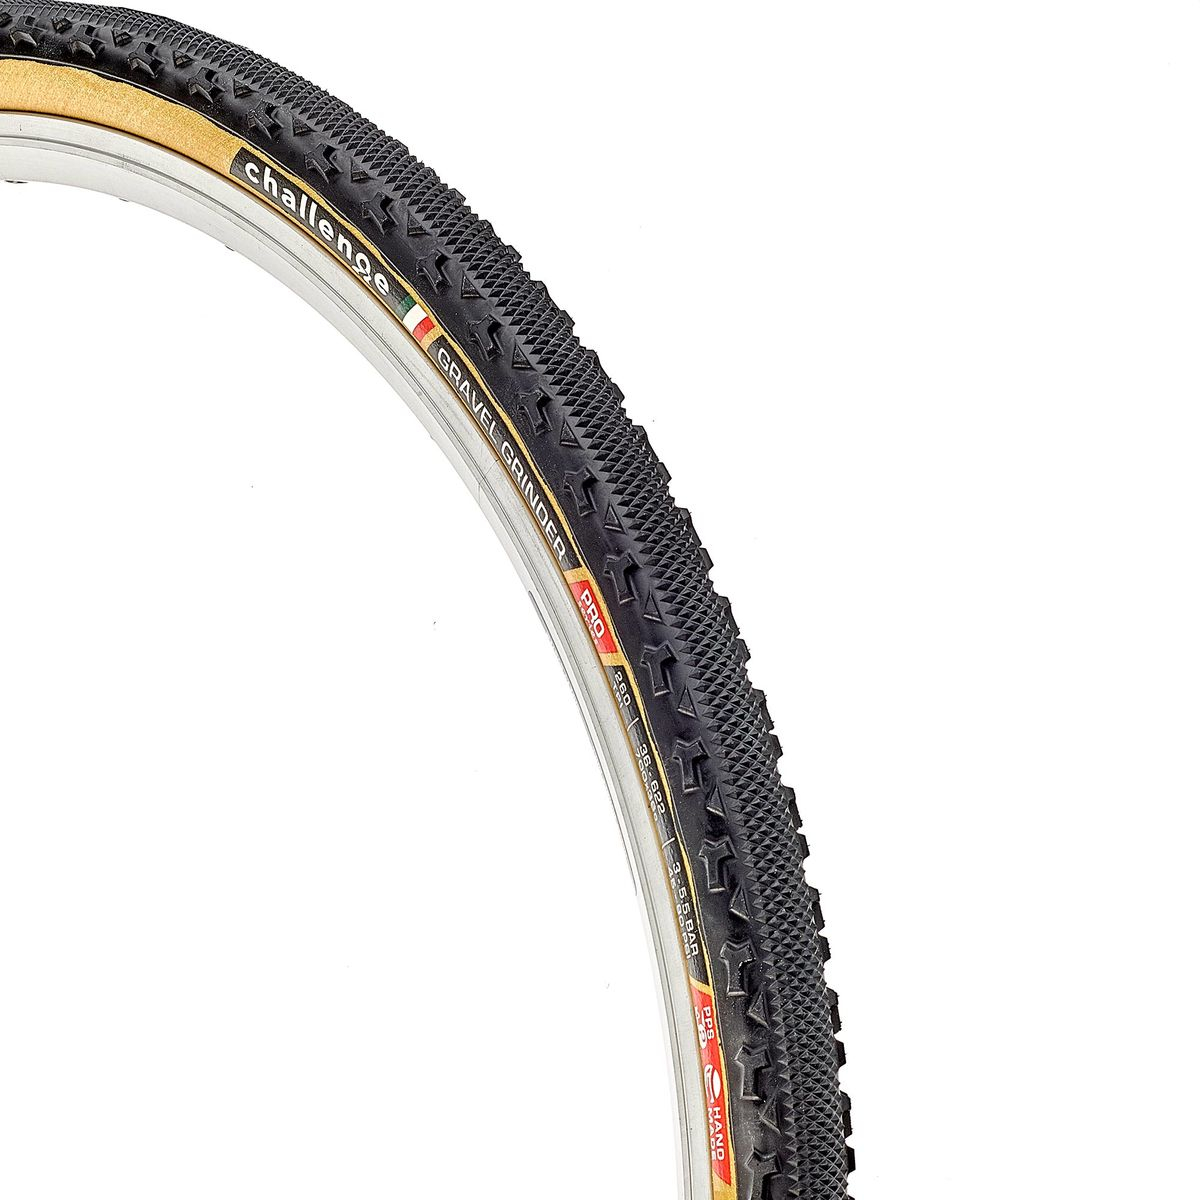 2 TIRES Challenge GRAVEL GRINDER PRO 260 TPI Bike Tire Clincher BLACK 700x36c